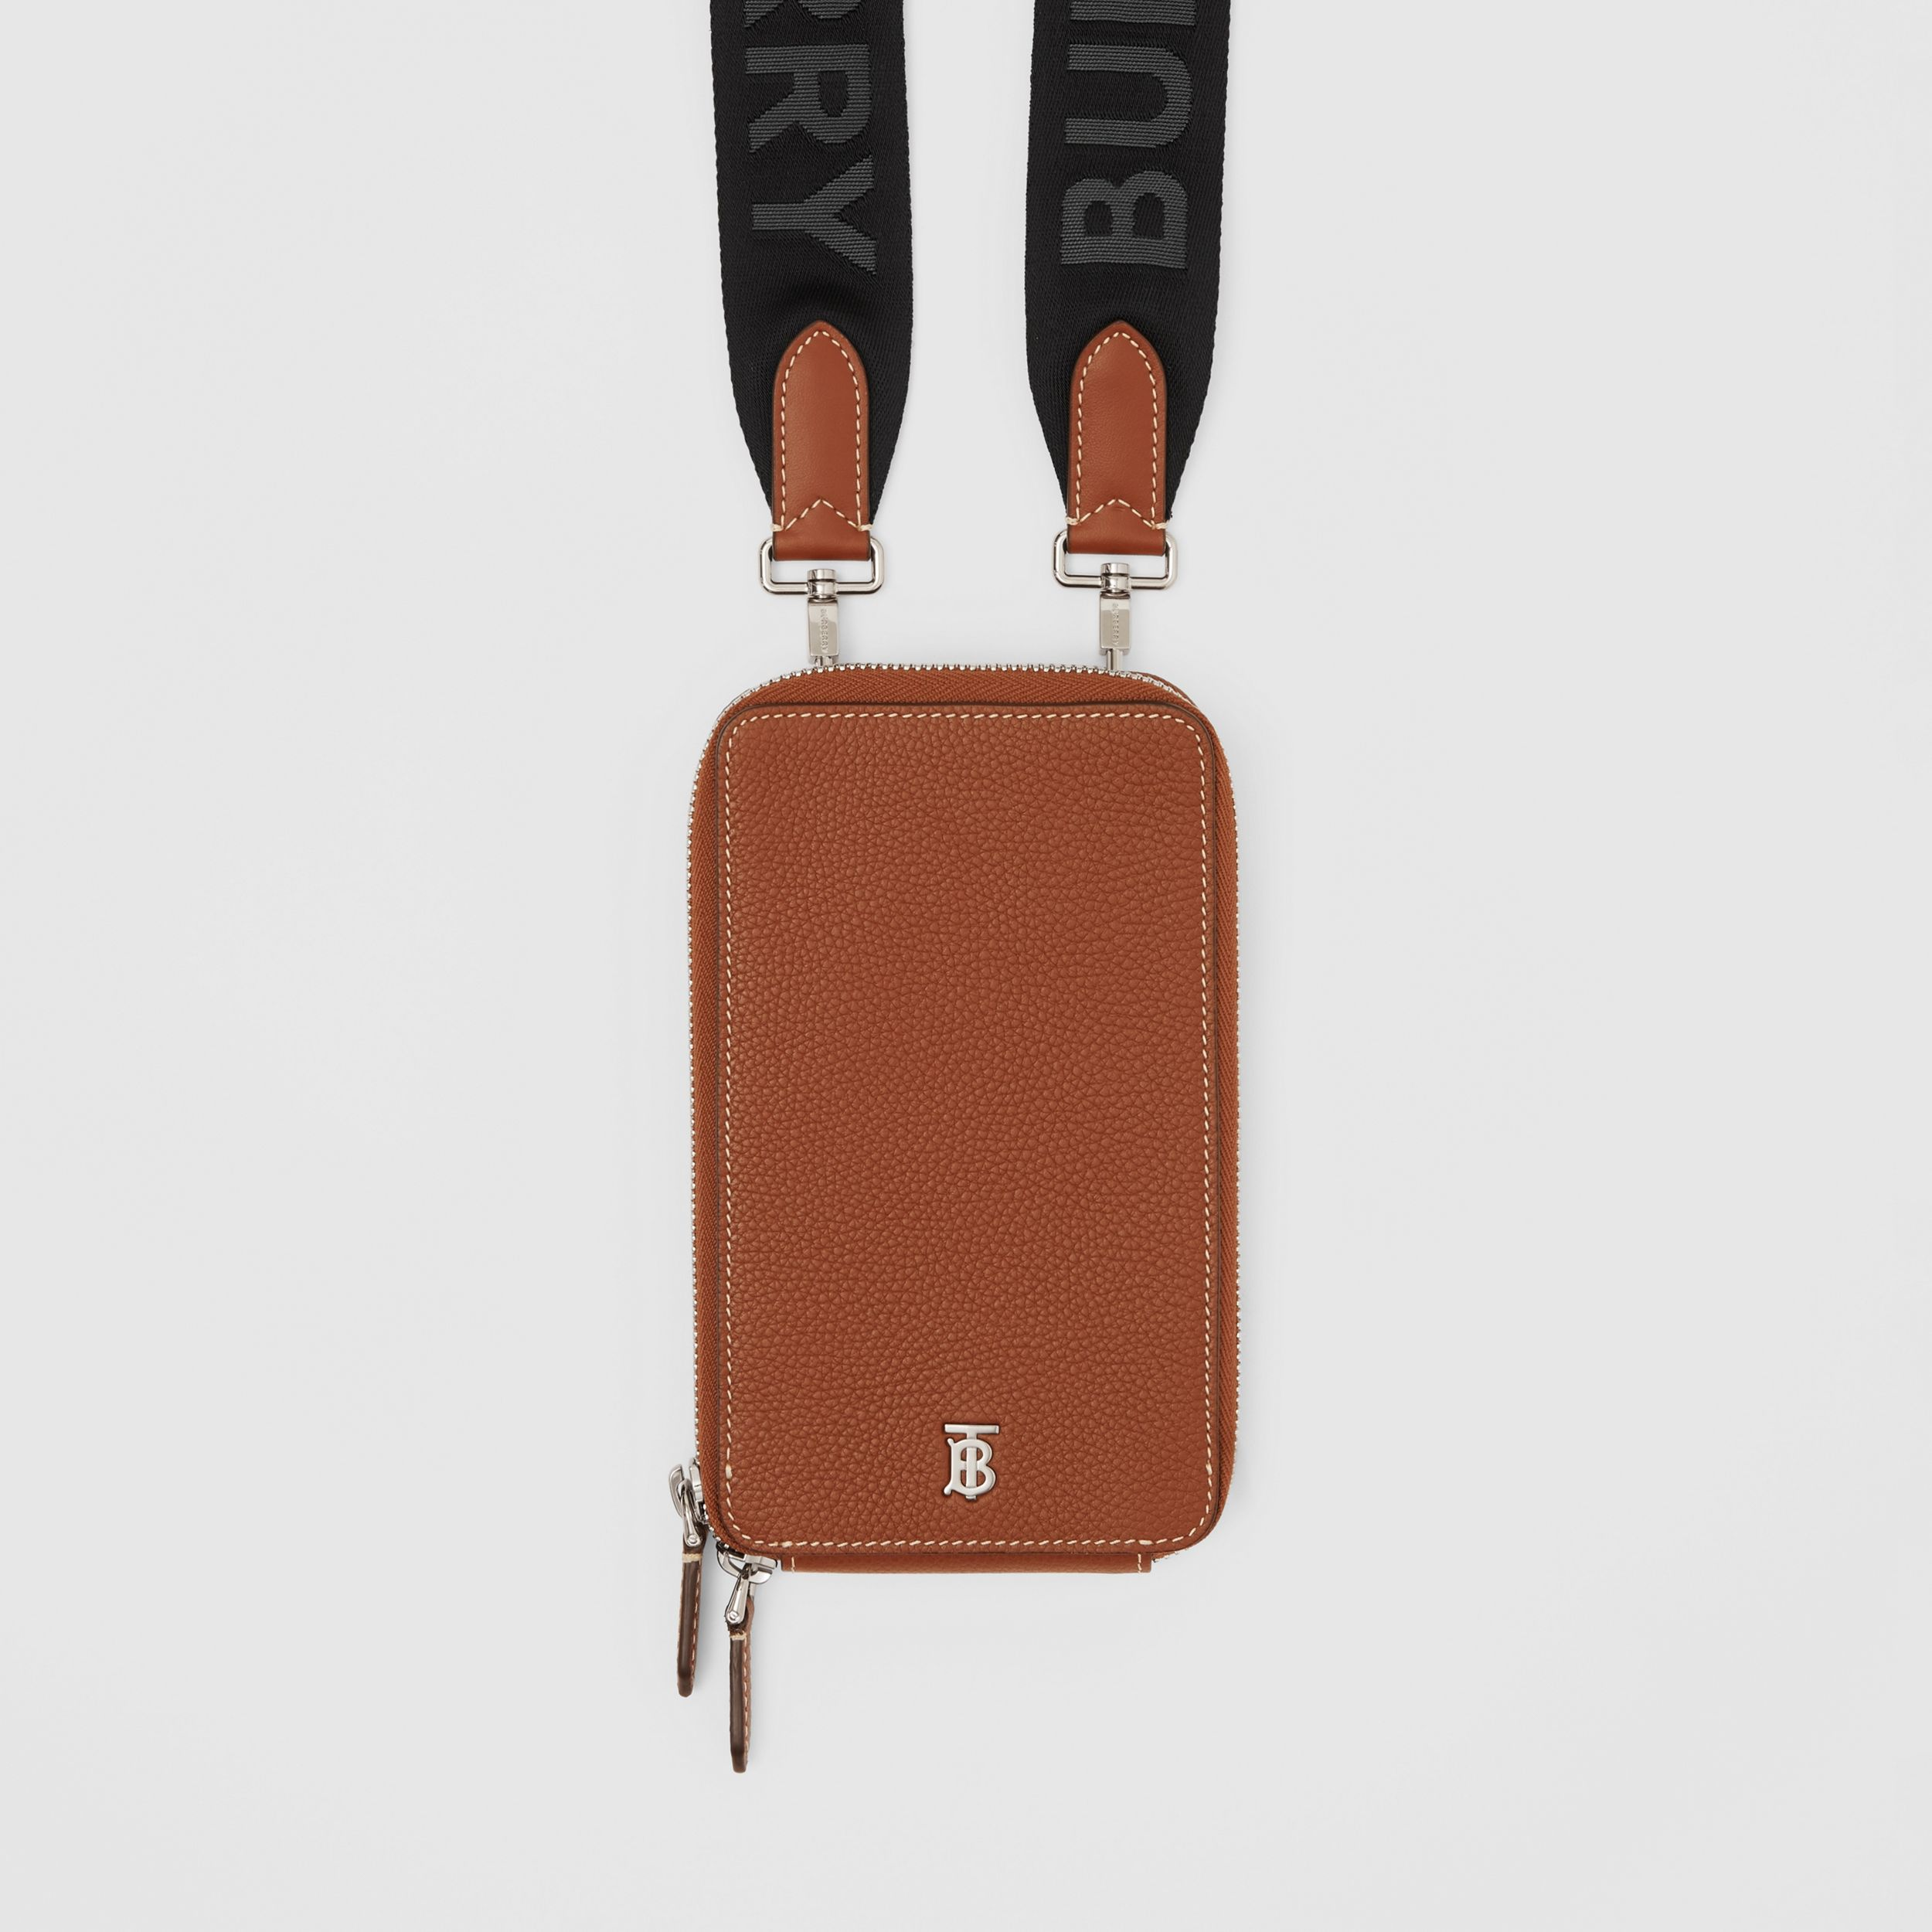 Grainy Leather Phone Case with Detachable Strap in Tan - Men | Burberry - 2